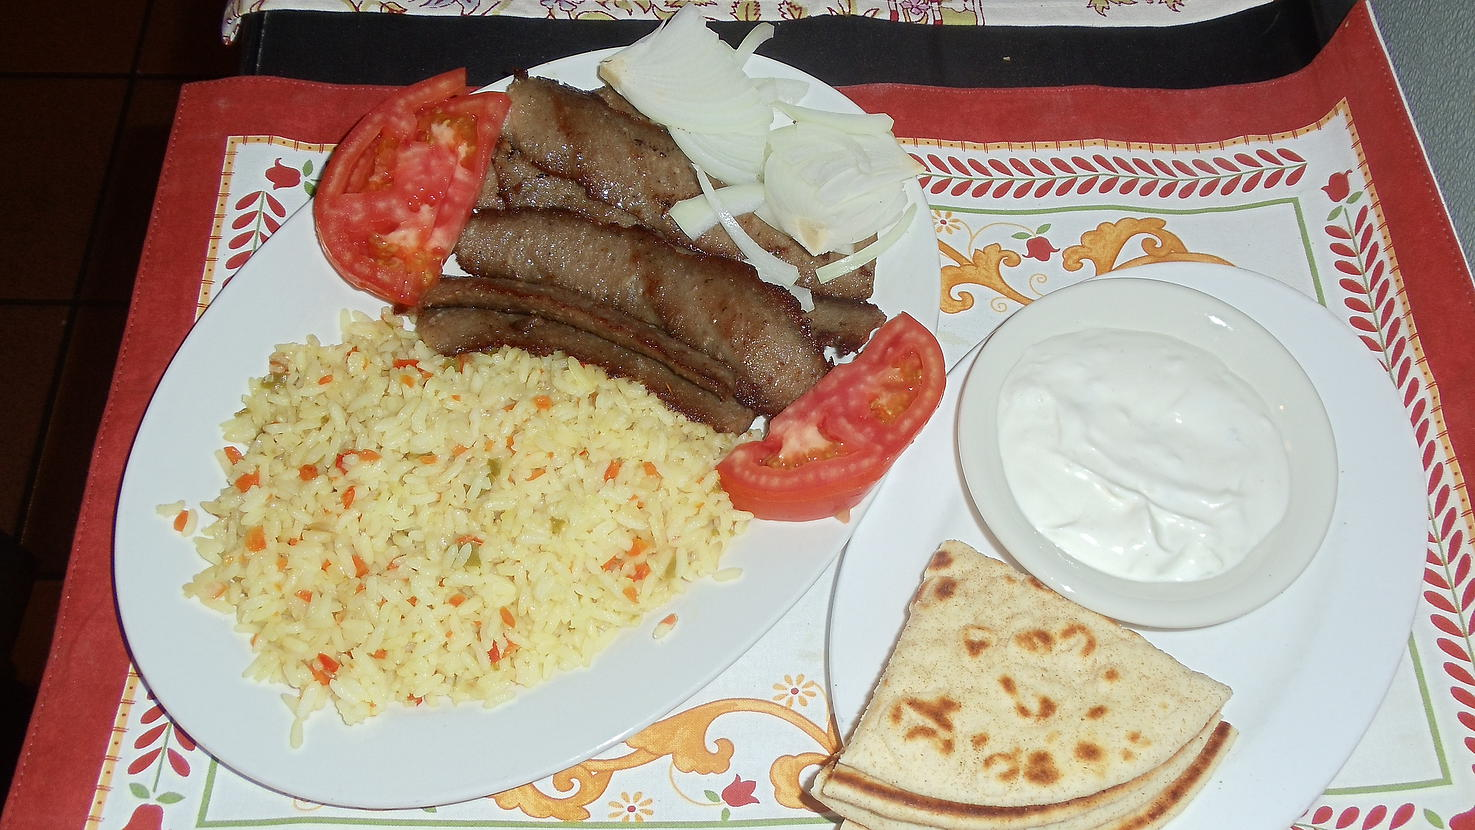 Gyro plate served with pita bread